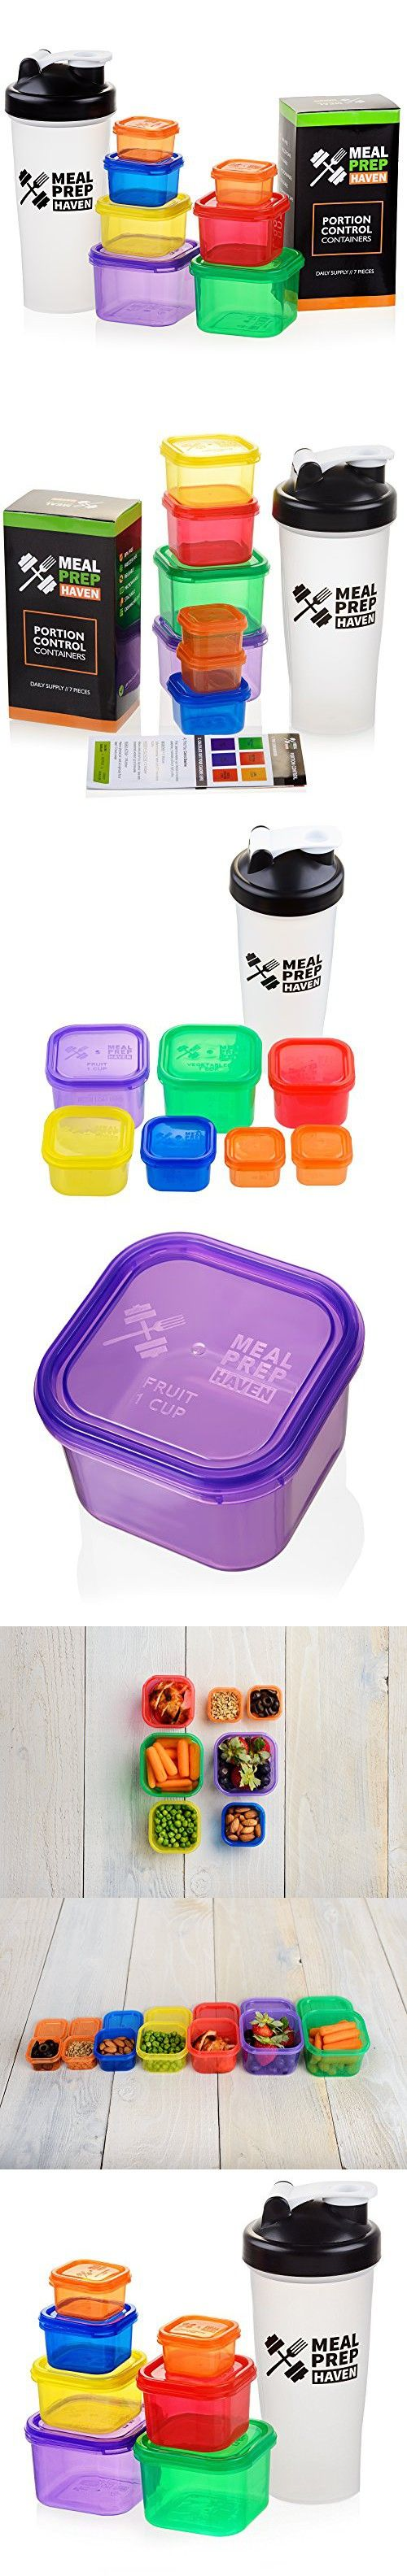 Meal Prep Haven 7 Piece Multi-Colored Portion Control Container Kit with Guide and Protein Shaker Bottle